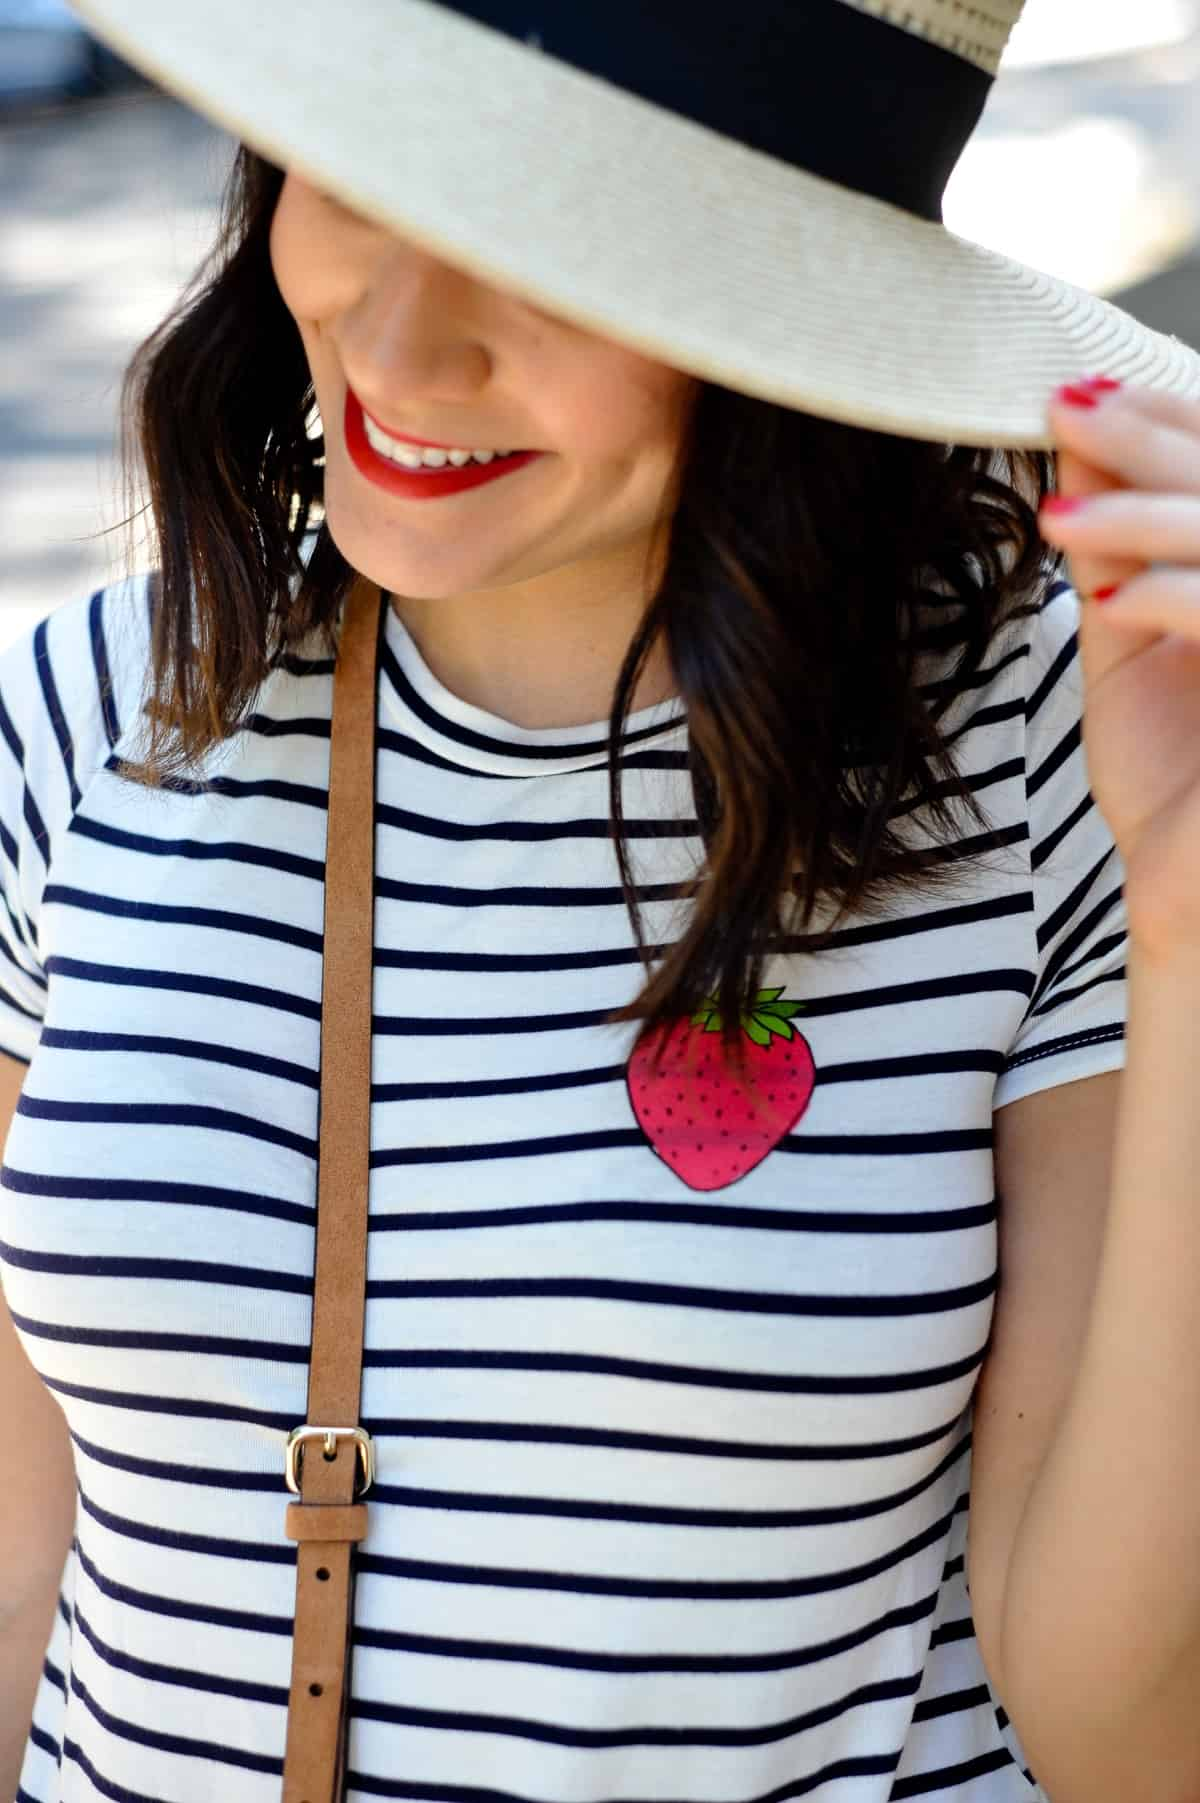 4th of july outfit ideas, striped tee outfits - @mystylevita - 28